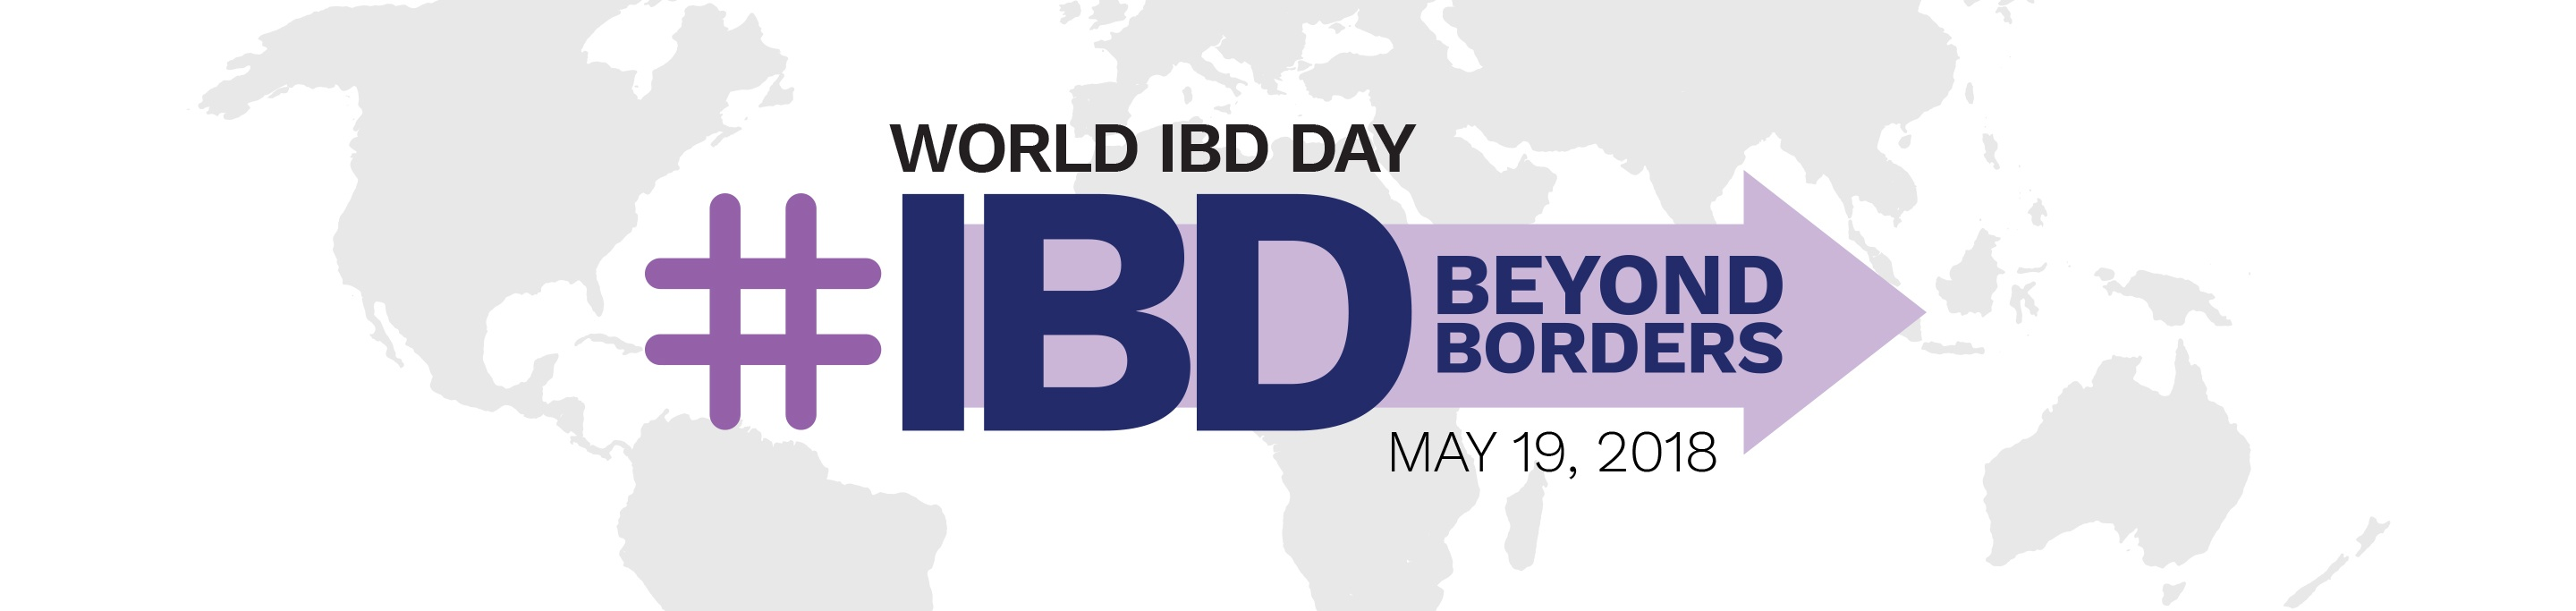 World IBD Day Header 2018.jpg